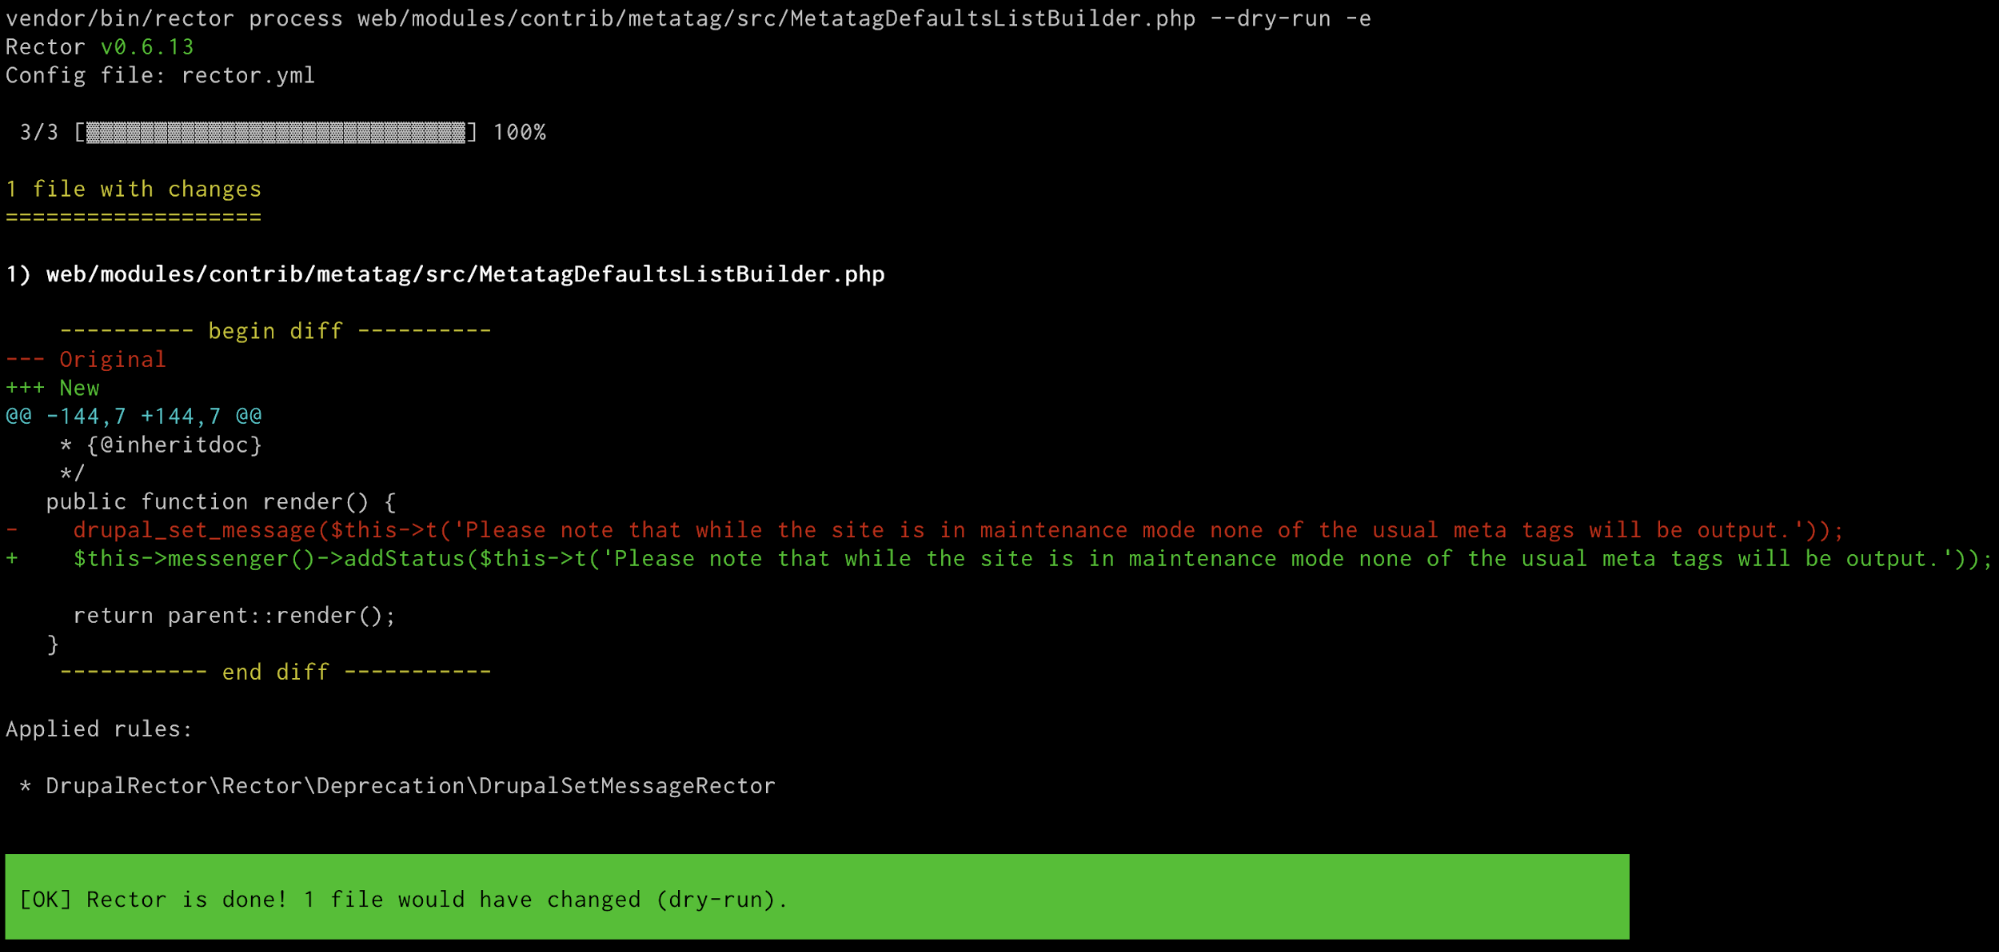 Image of terminal window running composer command for drupal-rector